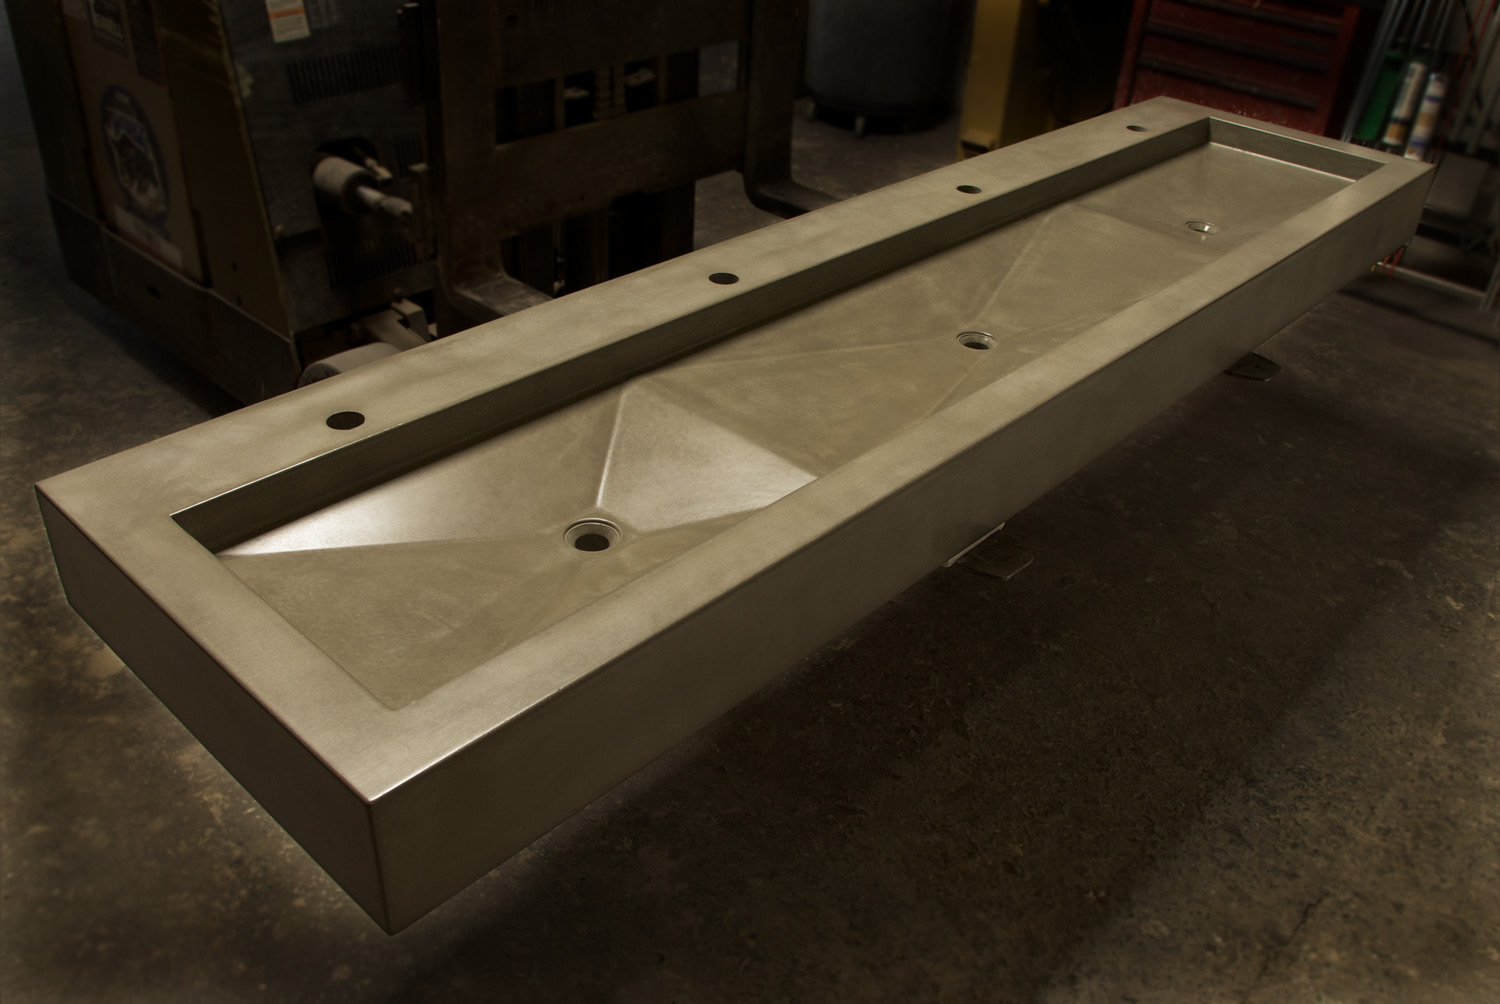 Triple basin modern concrete sink in natural grey for a restaurant in Dallas, TX